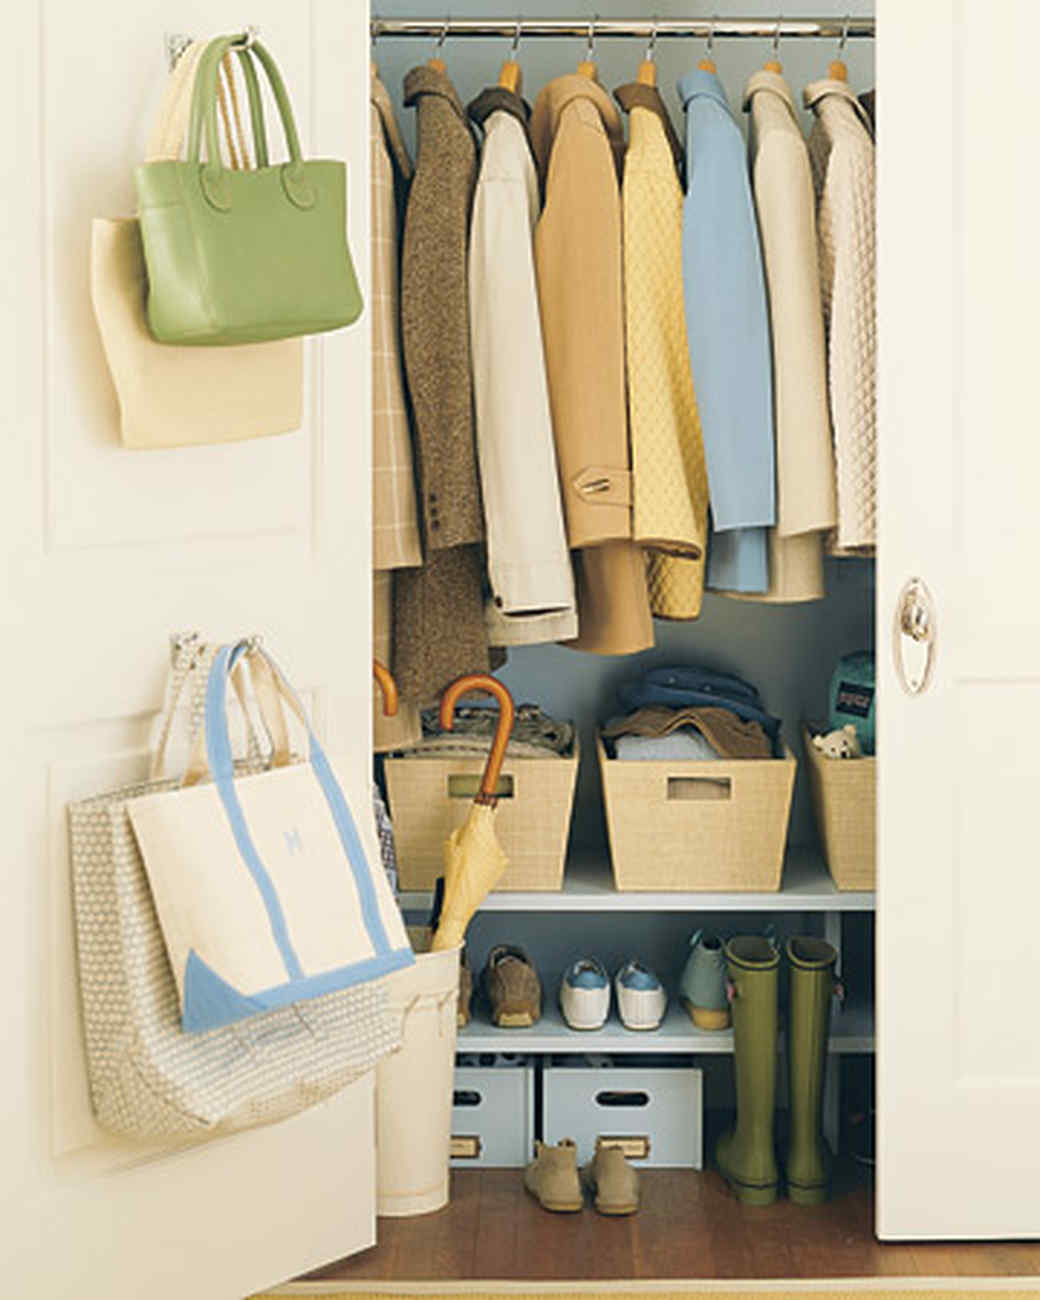 Storage Ideas For Closets save space in closets, hallways, and more | martha stewart